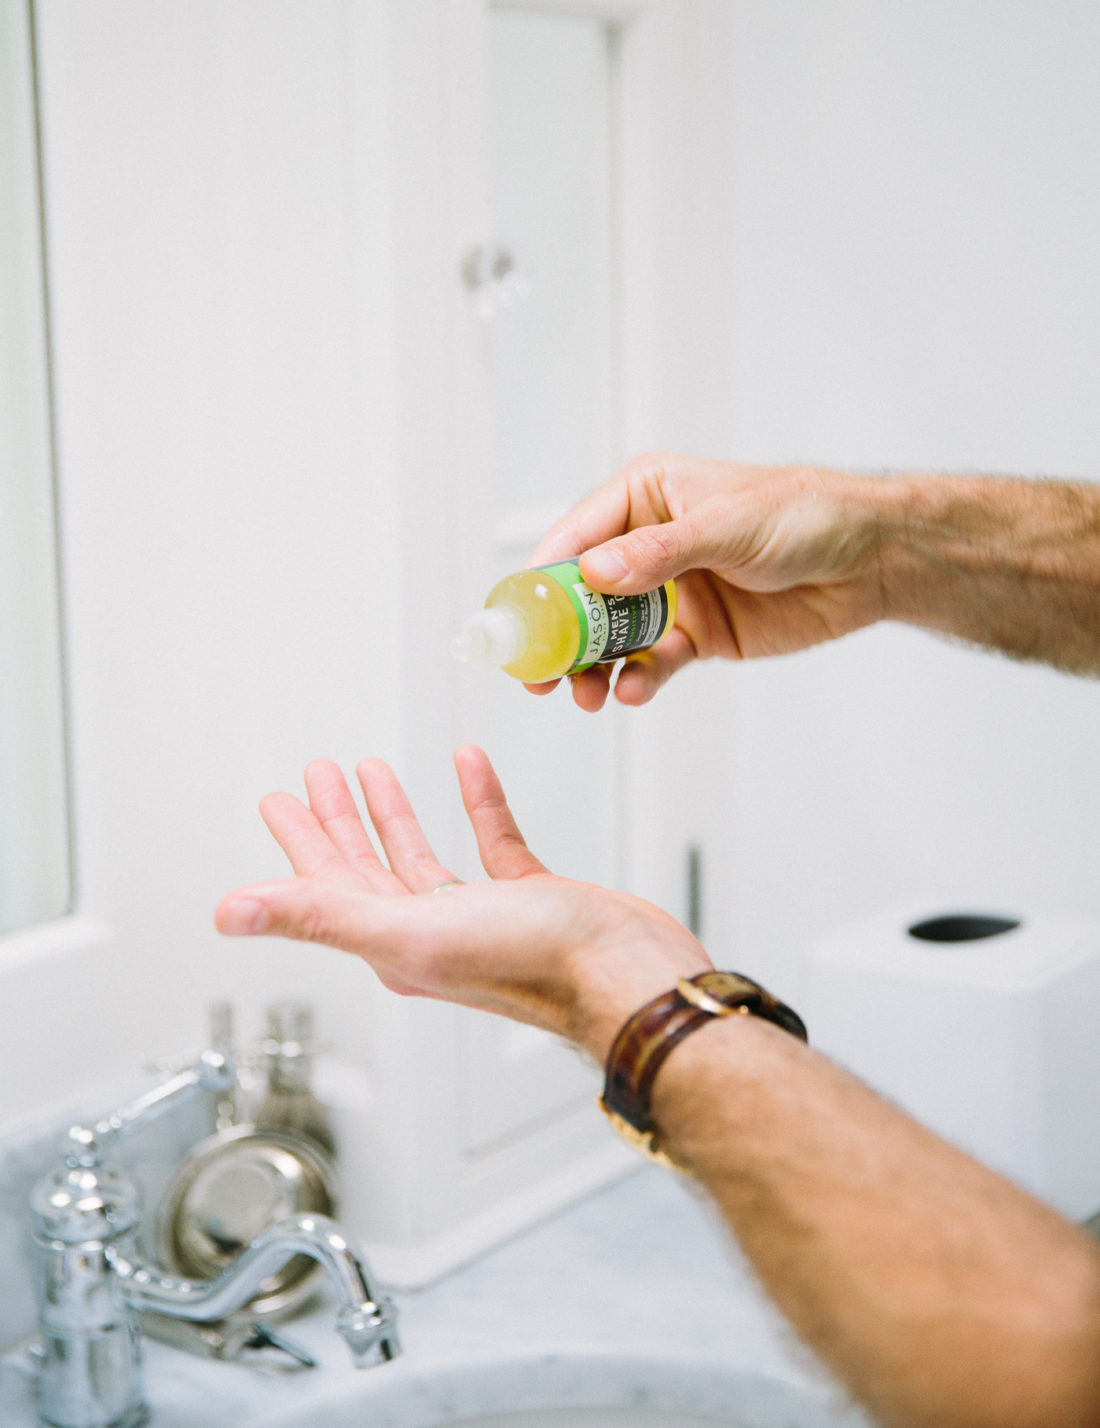 Kyle Martino uses shave oil to shave off his beard in the bathroom of his Connecticut home